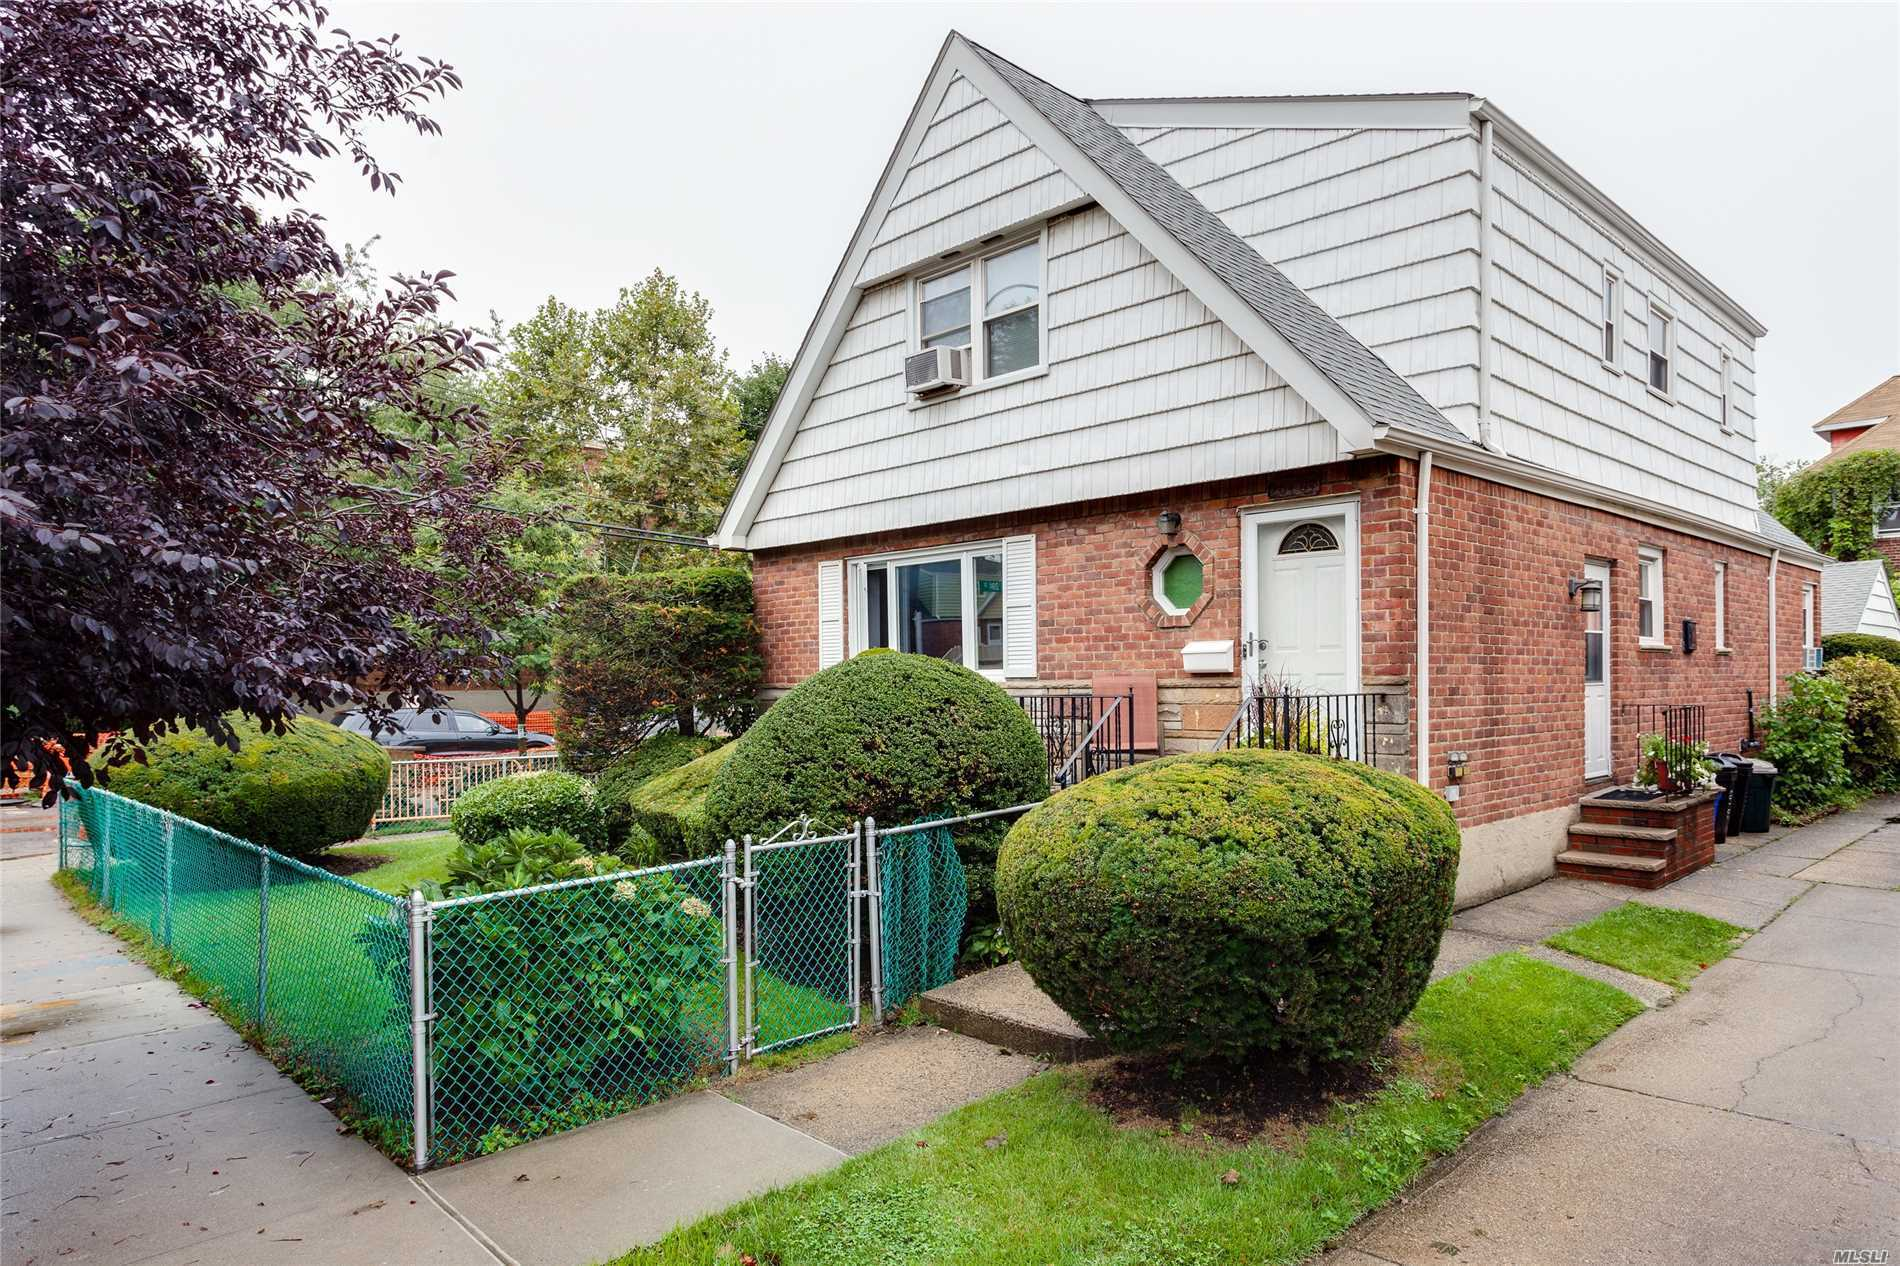 A Beautiful Detached, Corner, South Facing Legal 2 Family House, In School District 26. R3X Zoning, 42X100 Lot Size, 2 Family Units, Separate Gas And Electrical Meters For Each Unit. Steel Beam, Detached 2 Car Garage. Near Northern Blvd, Q12, Q13 To Flushing, Close To All Highways, Walking Distance To Lirr Station. Easy To Rent